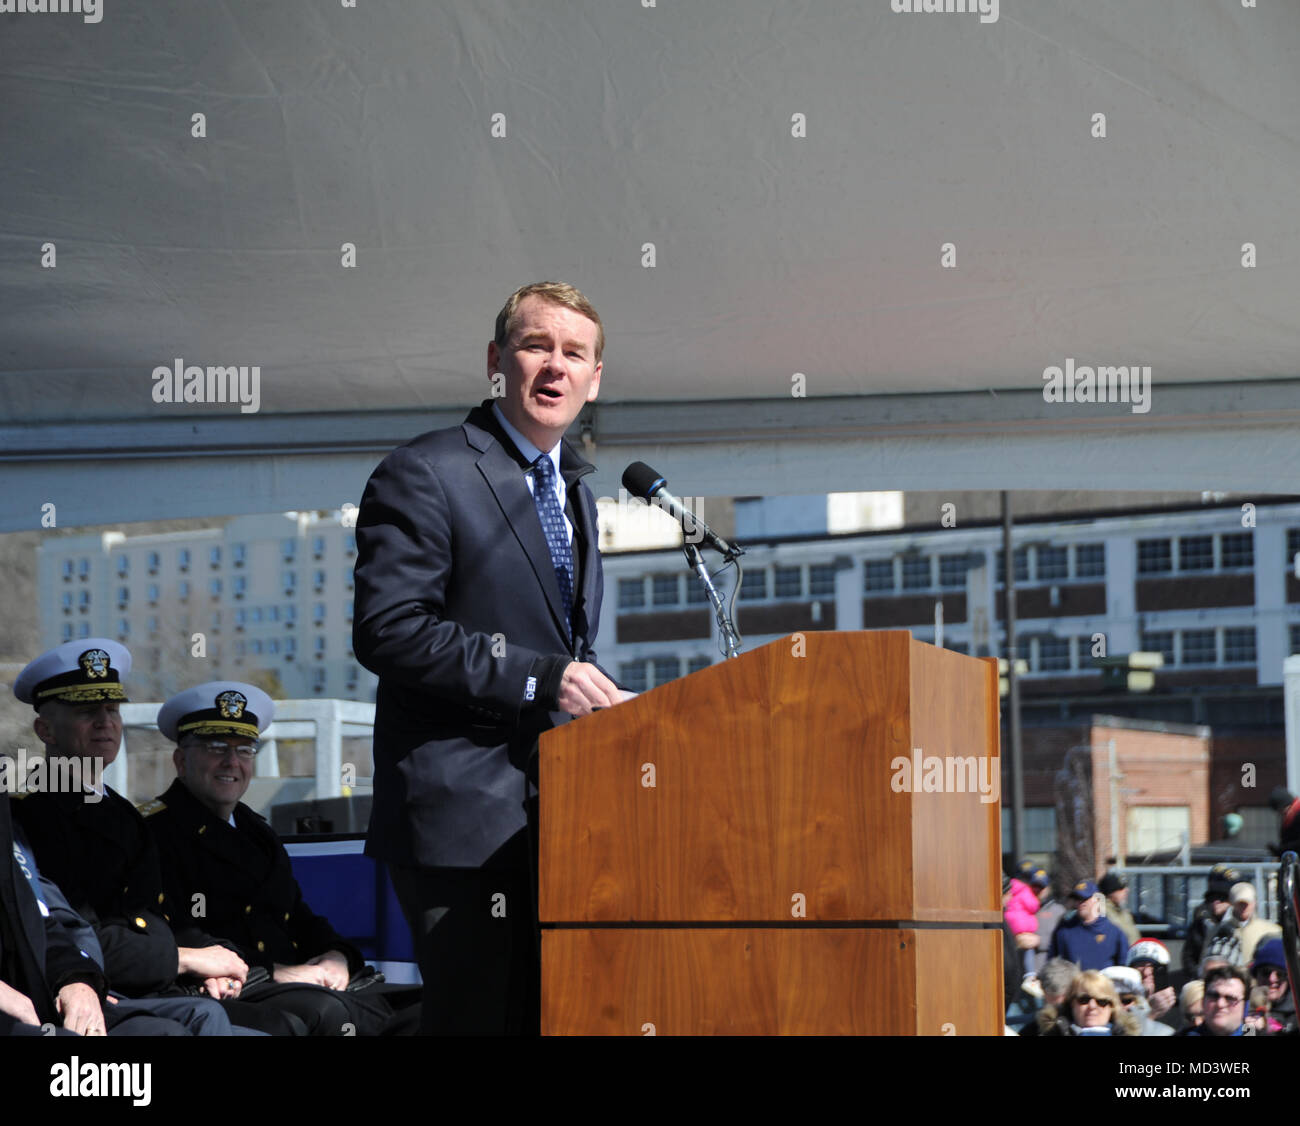 GROTON, Conn. (Mar. 17, 2018) The Honorable Michael F. Bennet, United States Senator, offers remarks at the commissioning ceremony for USS Colorado (SSN 788) on March 17, 2018. Colorado is the the U.S. Navy's 15th Virginia-class attack submarine and the fourth US Navy ship named for the State of Colorado.  (U.S. Navy photo by Chief Petty Officer Darryl I. Wood/Released) Stock Photo